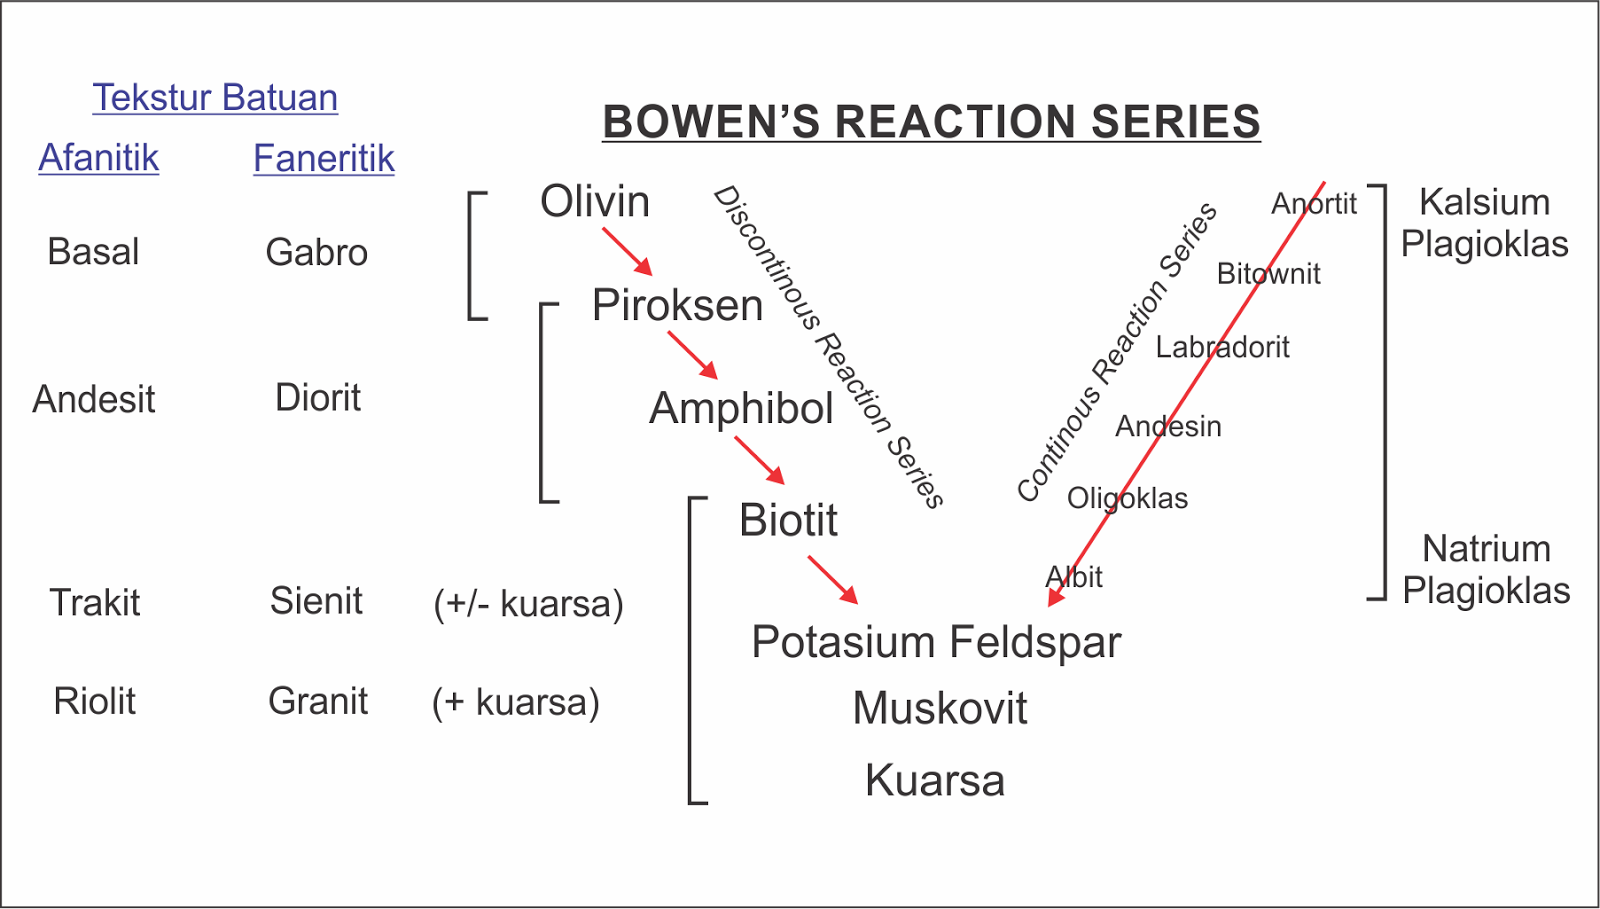 medium resolution of brs bowen s reaction series dasar ilmu dalam studi batuan dan bowen reaction diagram